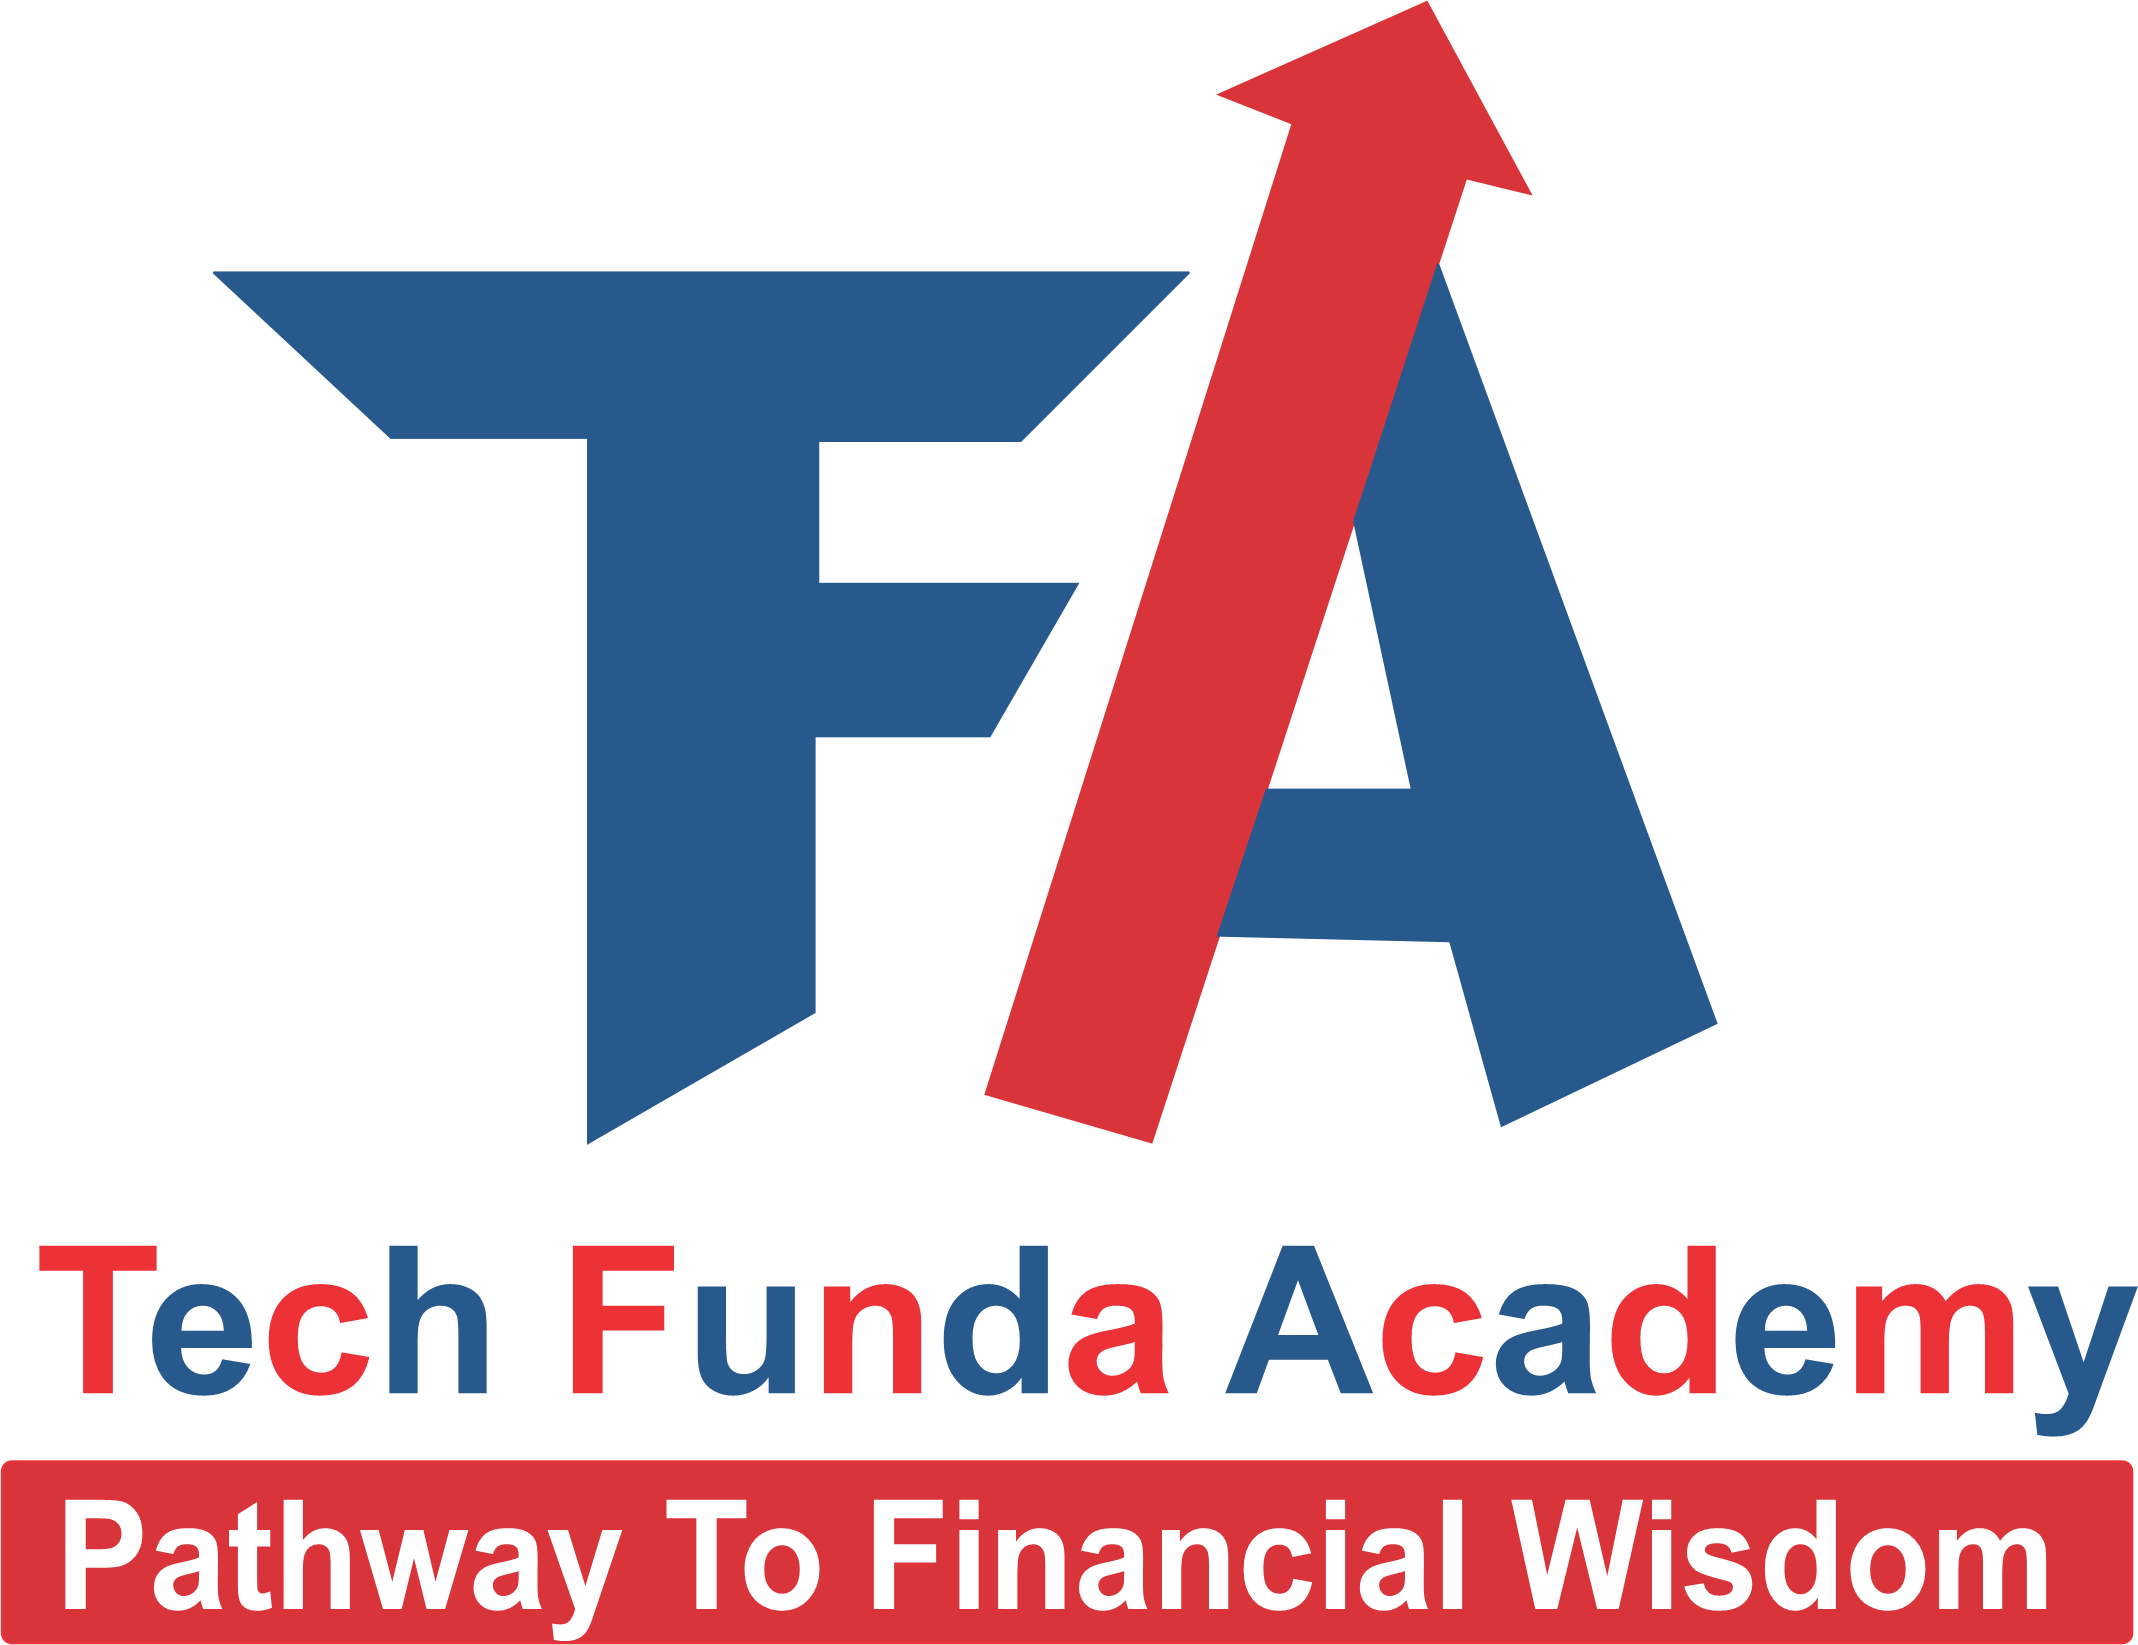 Tech Funda Academy